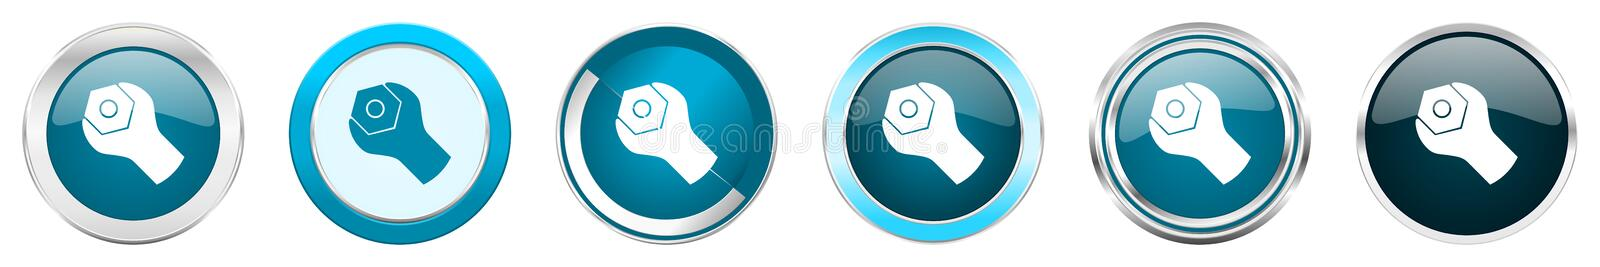 Tools silver metallic chrome border icons in 6 options, set of web blue round buttons isolated on white background royalty free illustration